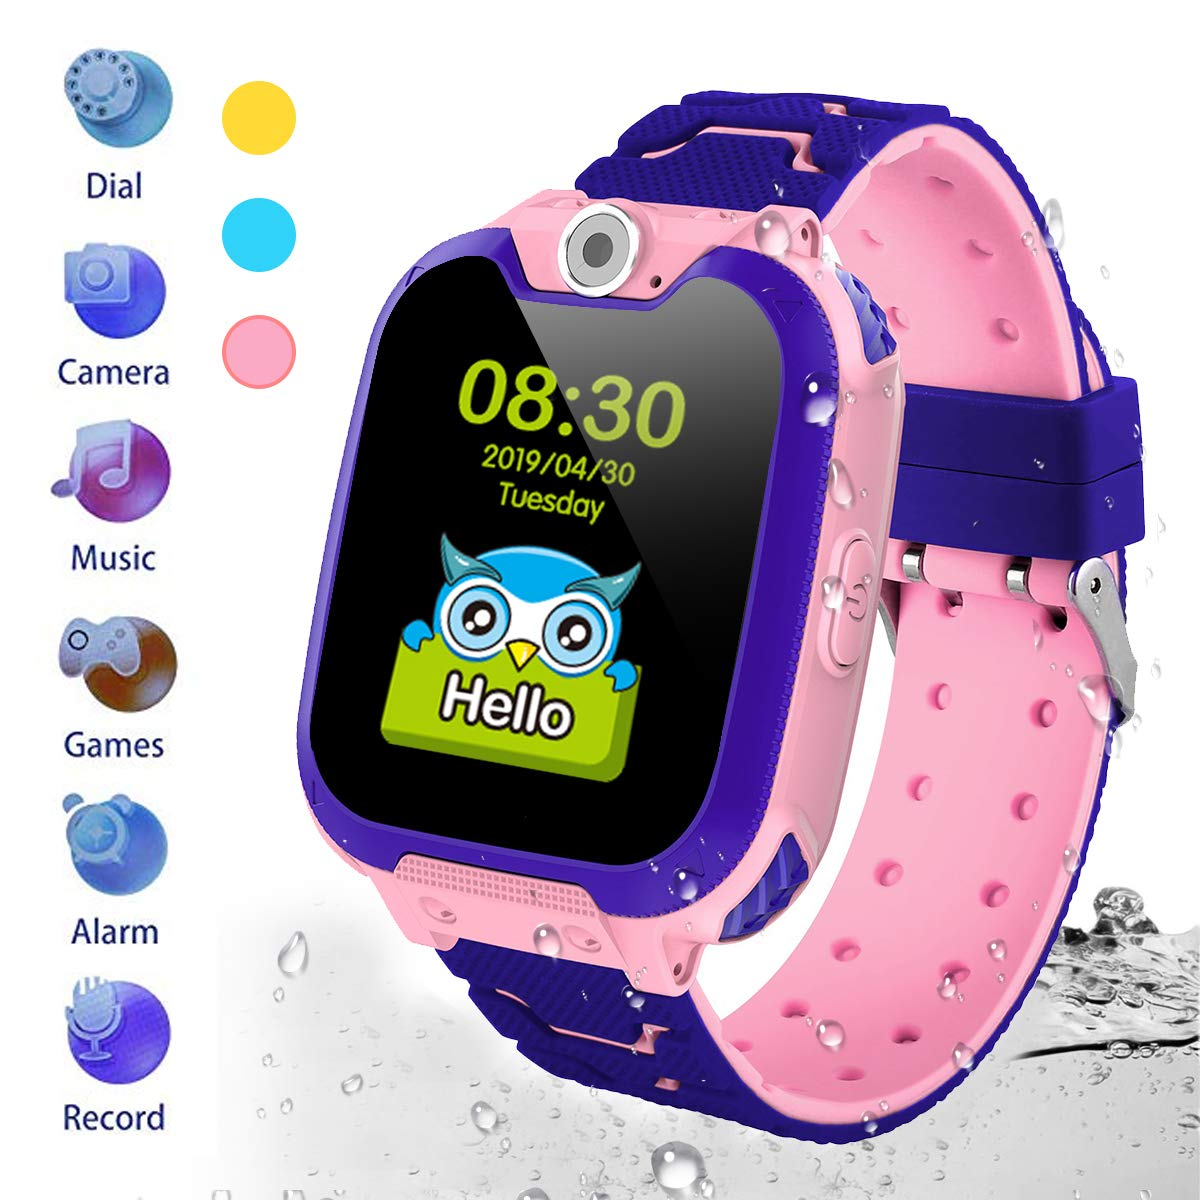 Kids Waterproof Smartwatch [SD Card Included],1.54 inch Colorful Touch Screen Smartwatch for Children with Quick Dial, Camera and Music Player,Calculator and Alarm for Boys and Girls(NOT SUPPORT AT&T) by HuaWise (Image #1)